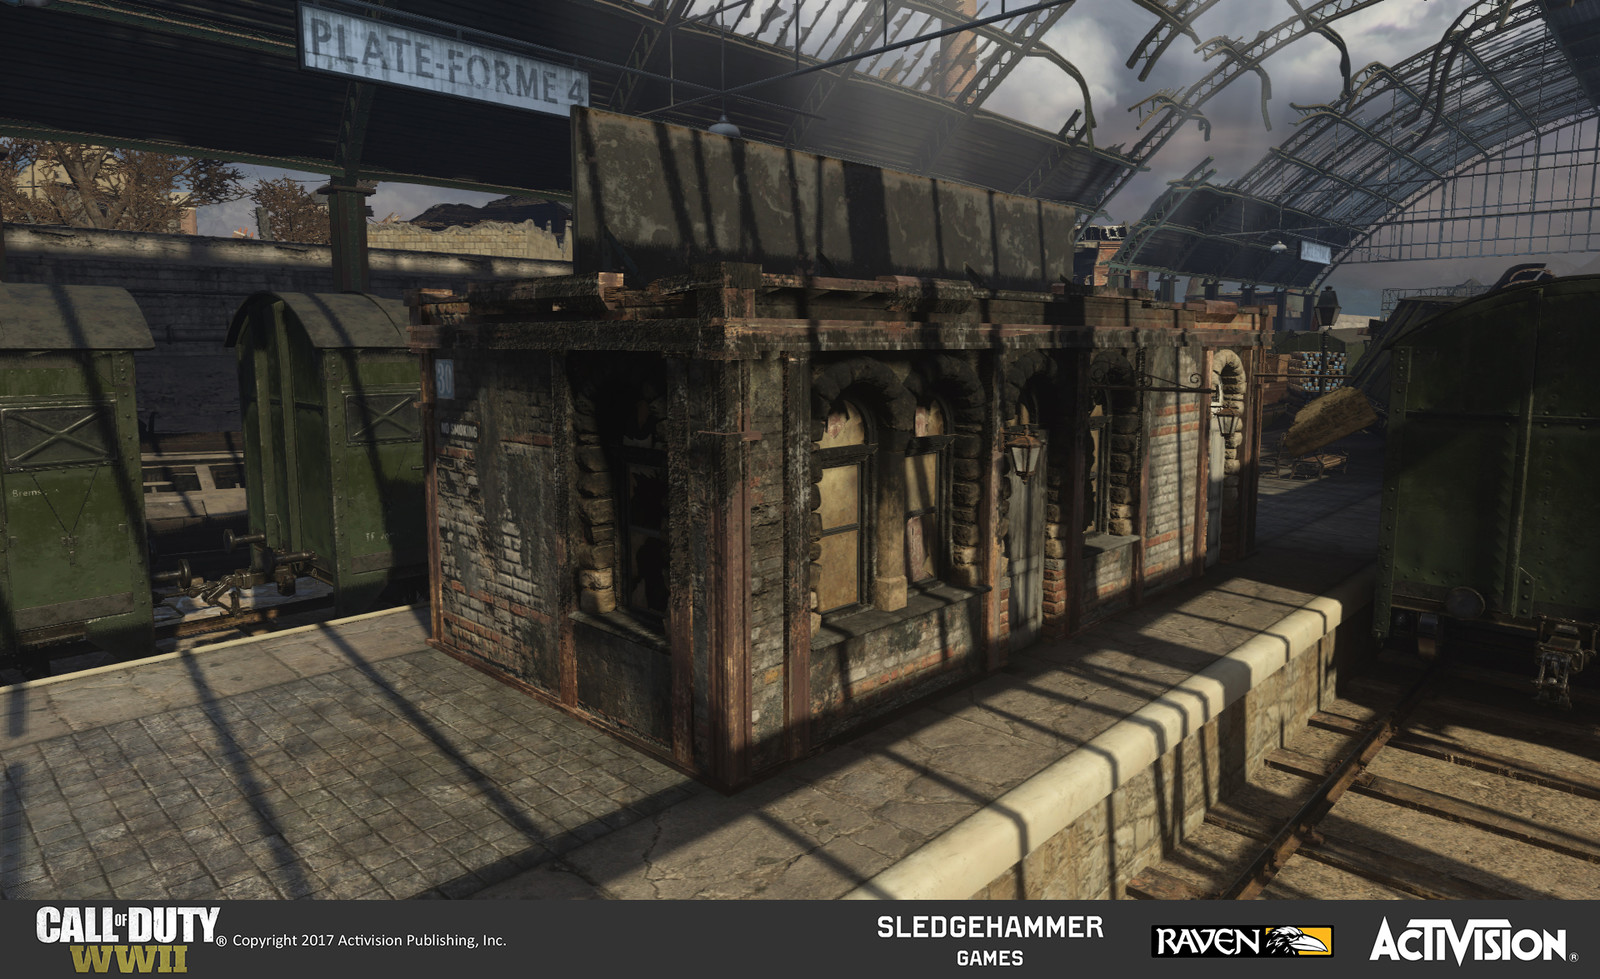 This is the reverse side of the ticket booth created for the train station. I only created one ticket building but made these two sides of it damaged/burnt to allow for versatility in placement. There is clean ground because it is outside play-space.